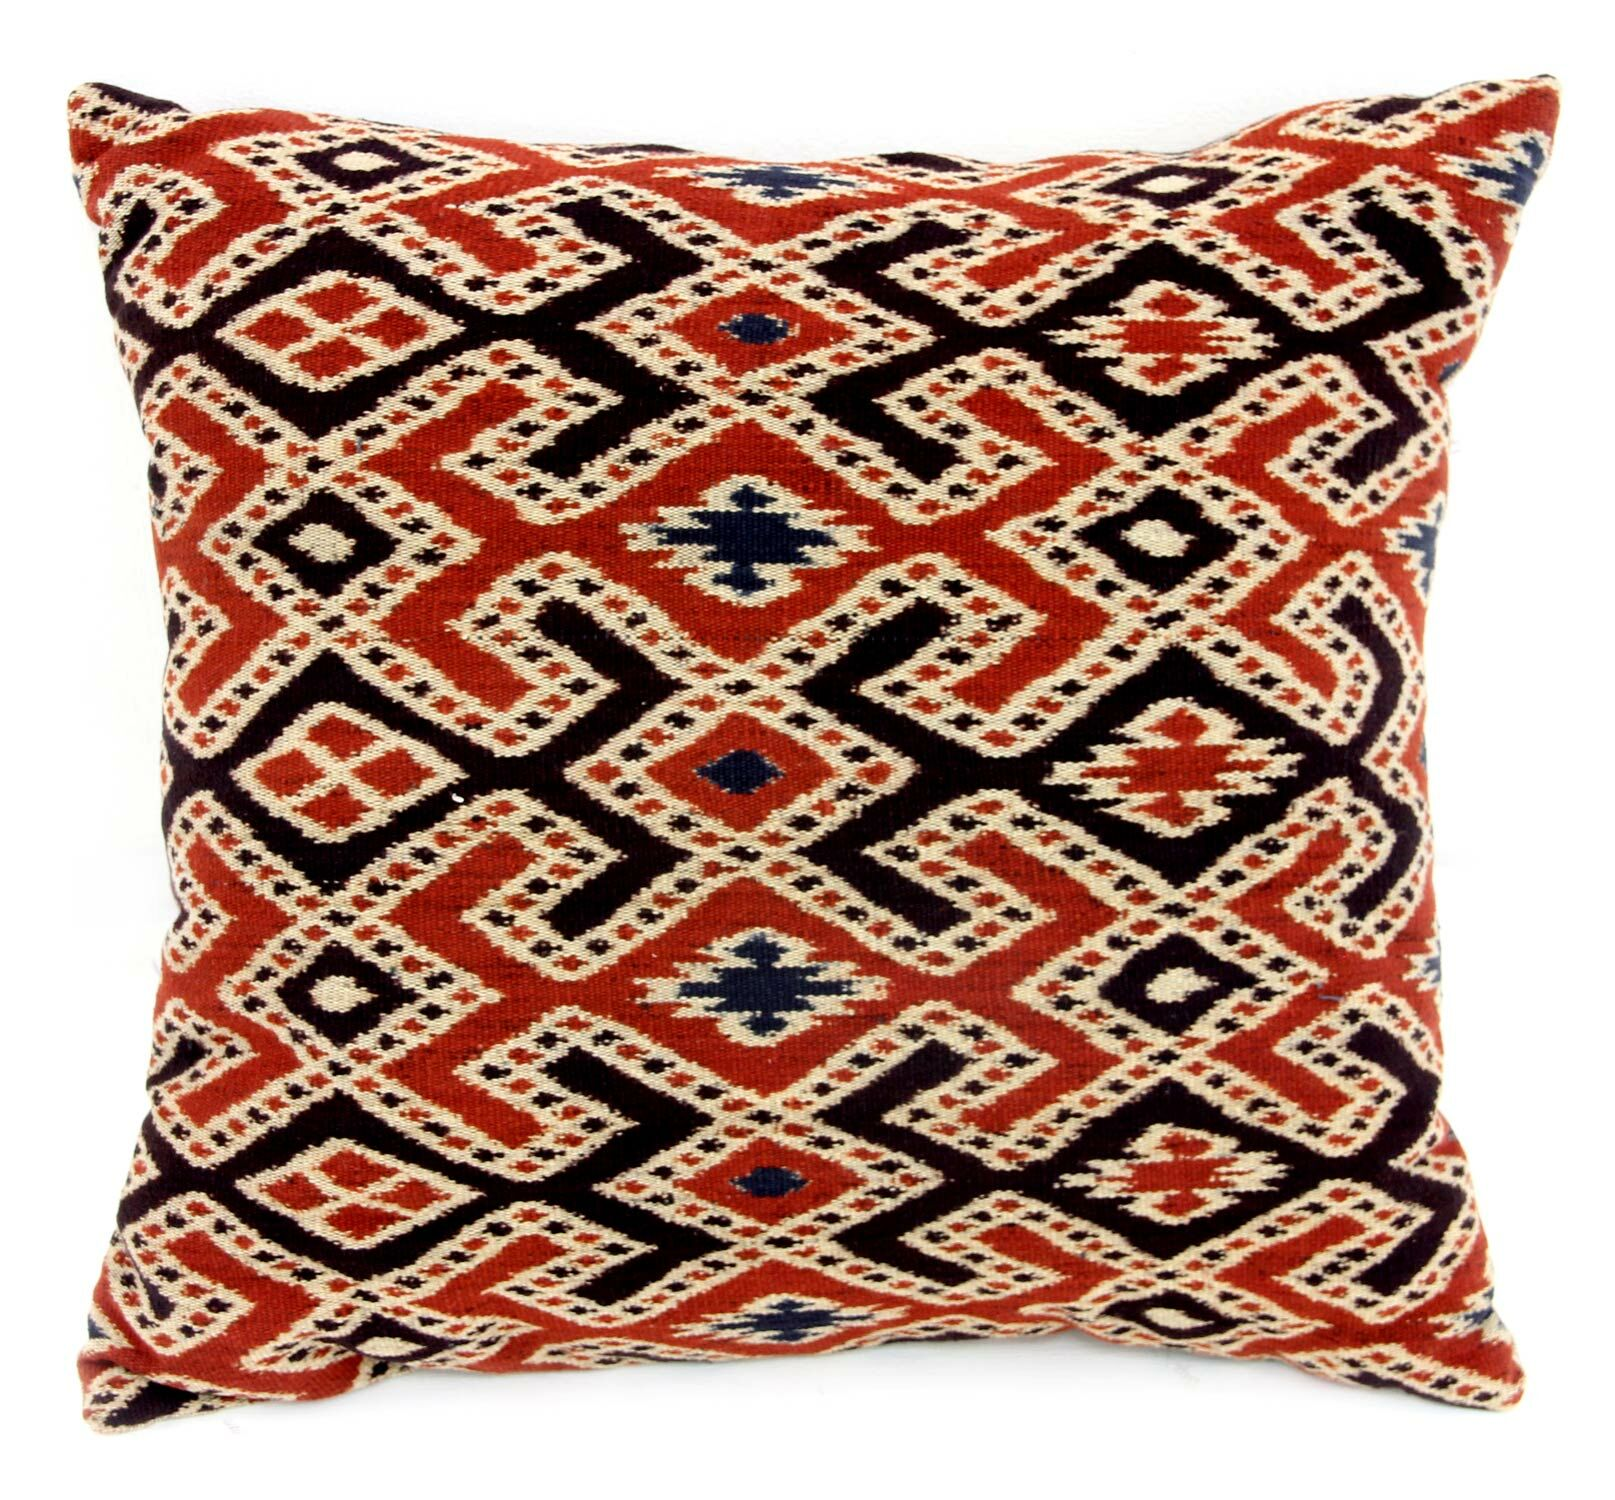 The Threads of Life Handwoven Ikat Cotton Throw Pillow